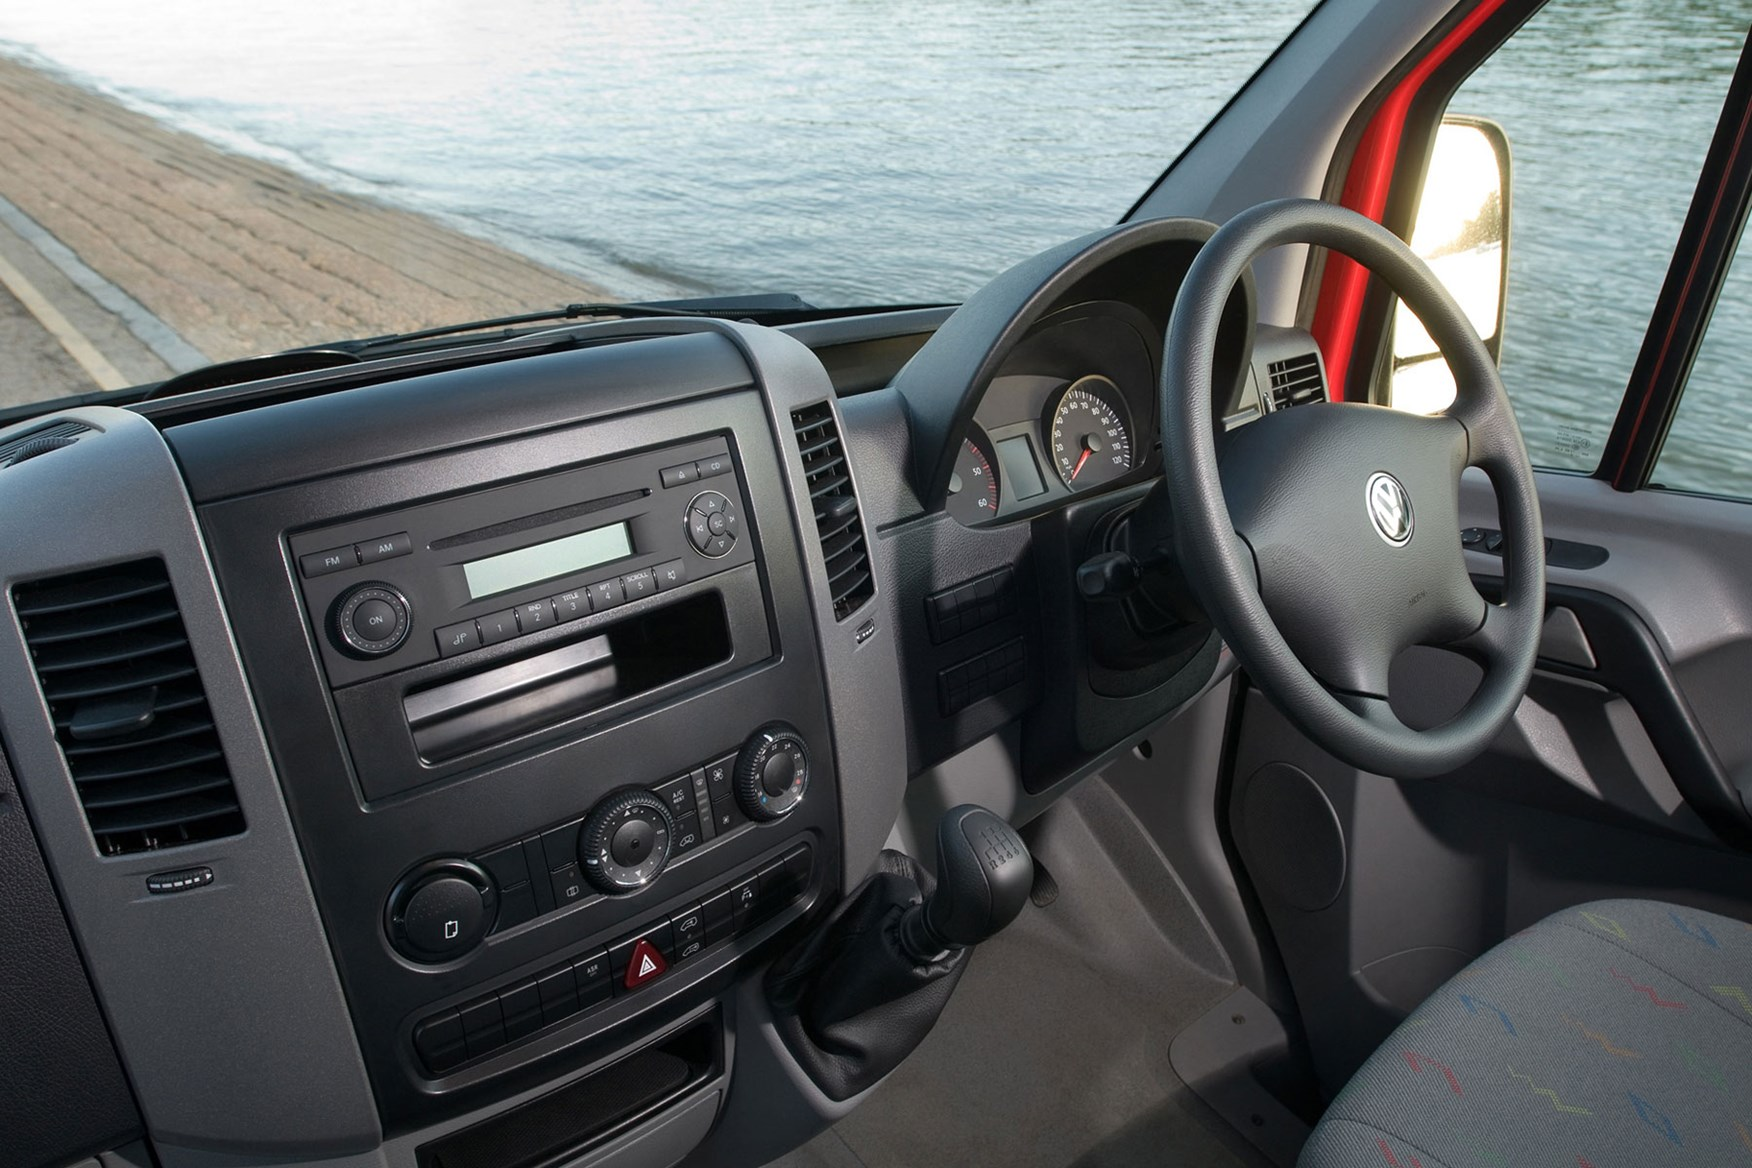 VW Crafter (1996-2003) cab interior